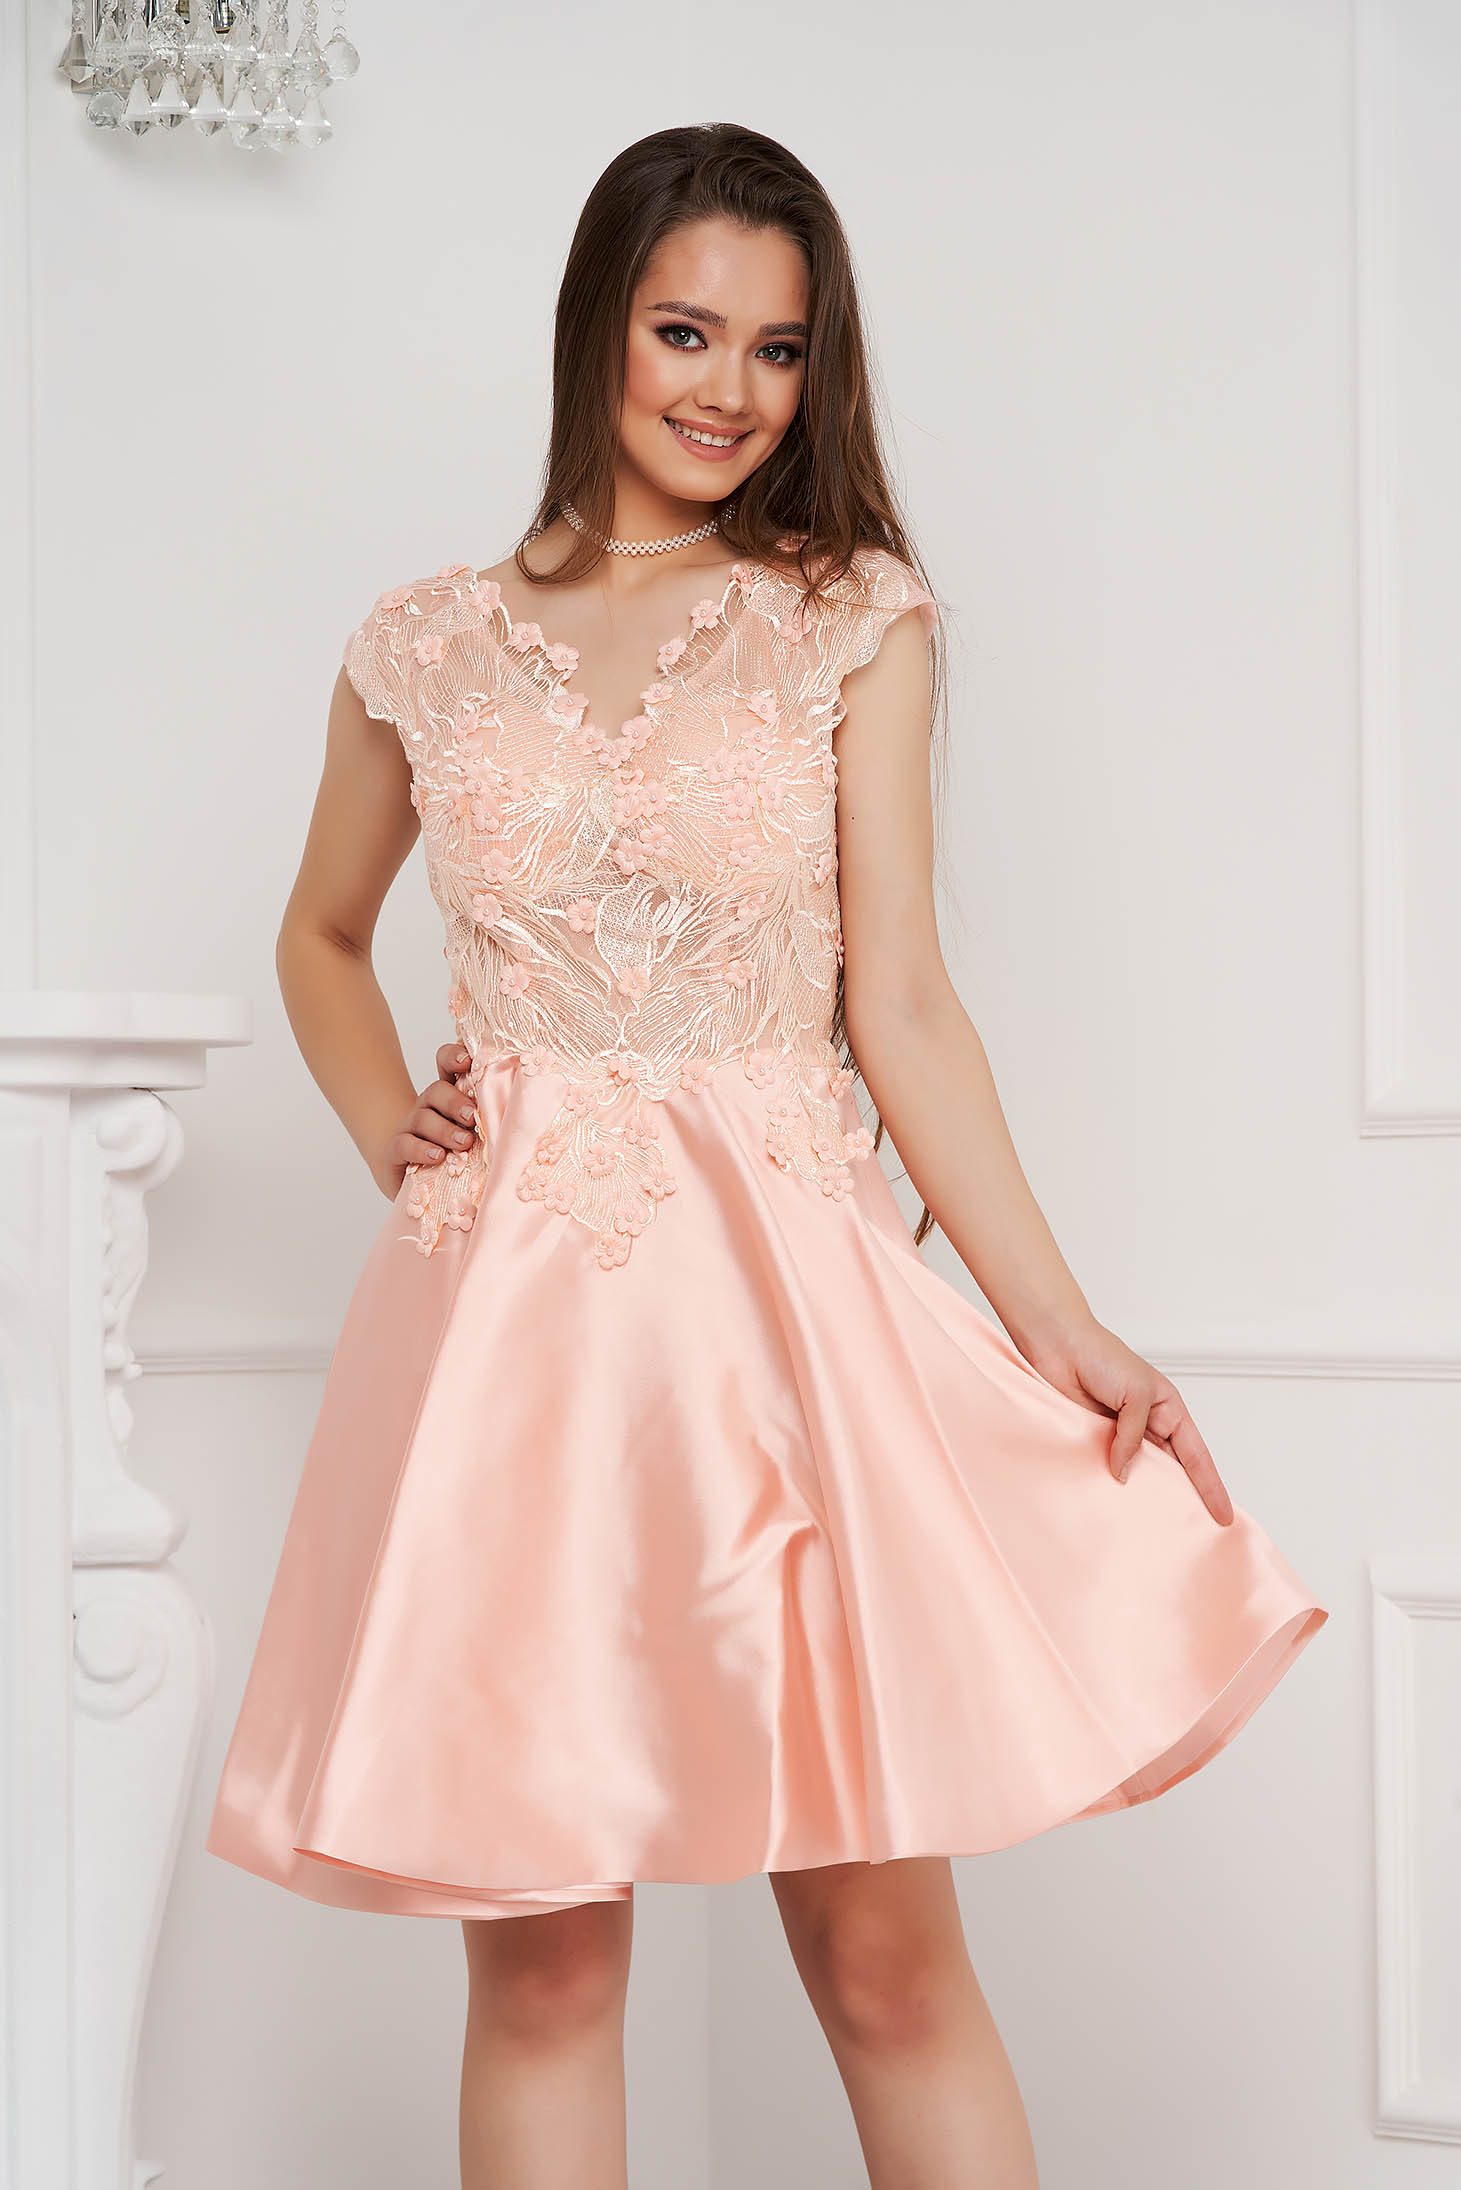 Lightpink dress short cut occasional laced from satin fabric texture cloche